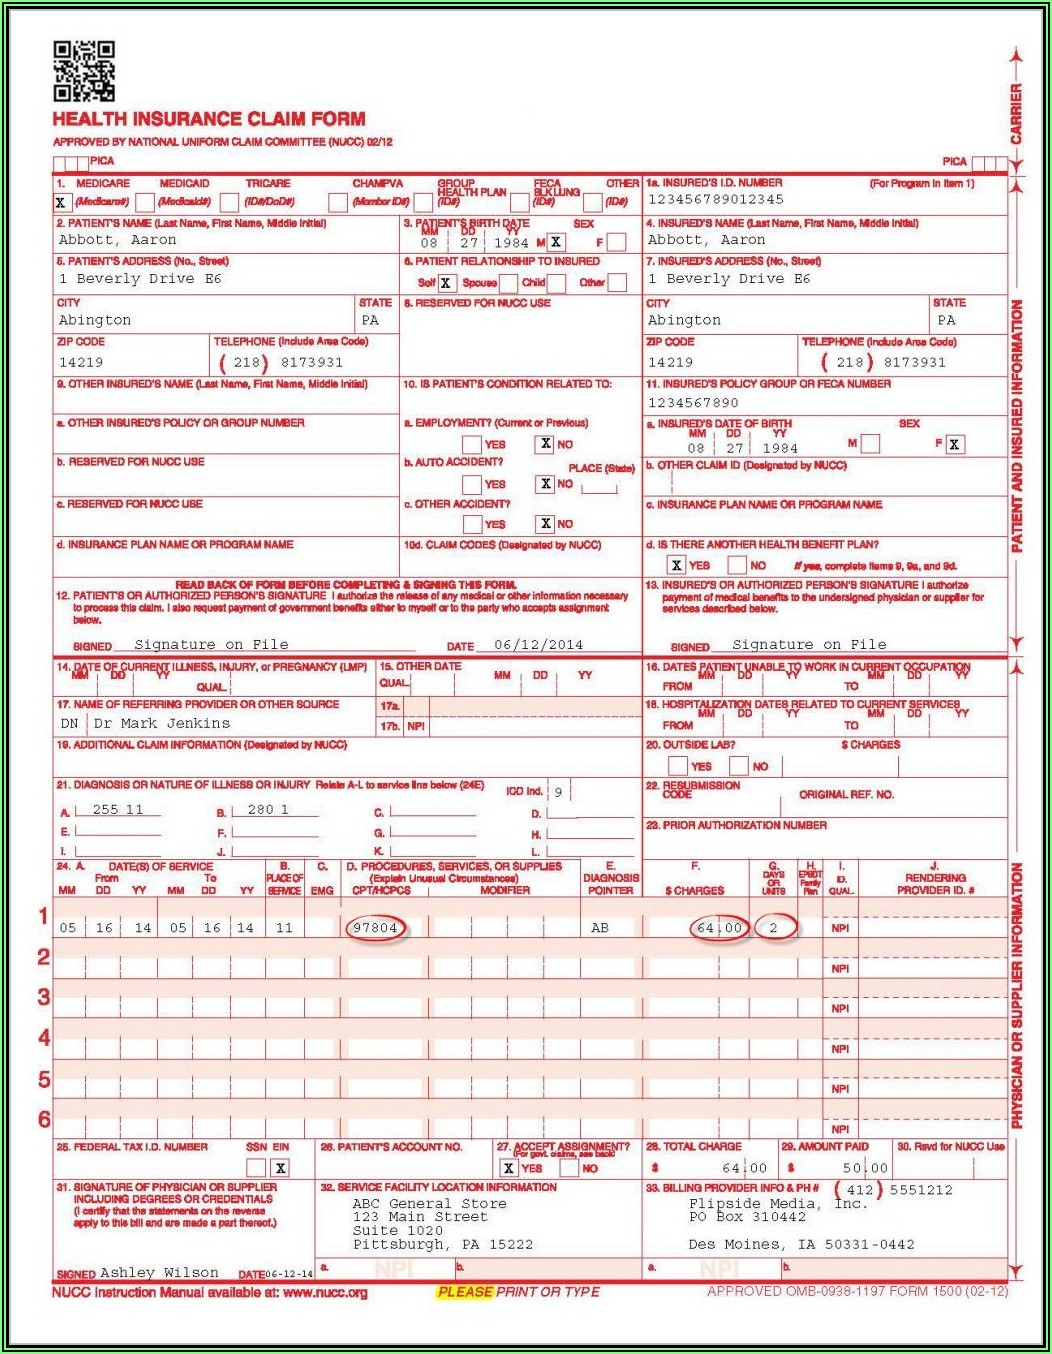 Hcfa 1500 Completed Cms 1500 Form Sample